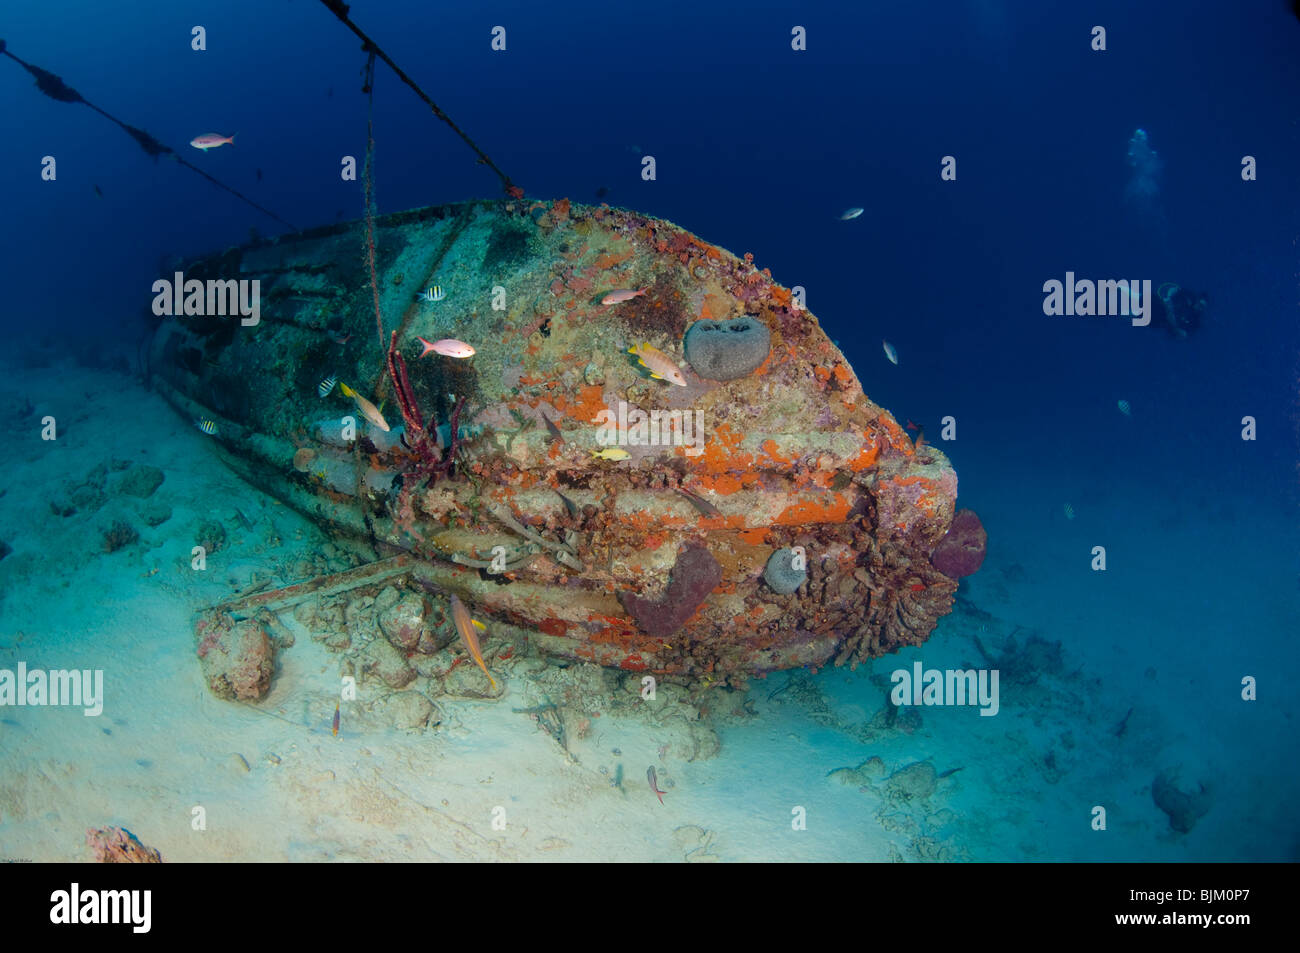 A diver views a small underwater shipwreck from afar. - Stock Image